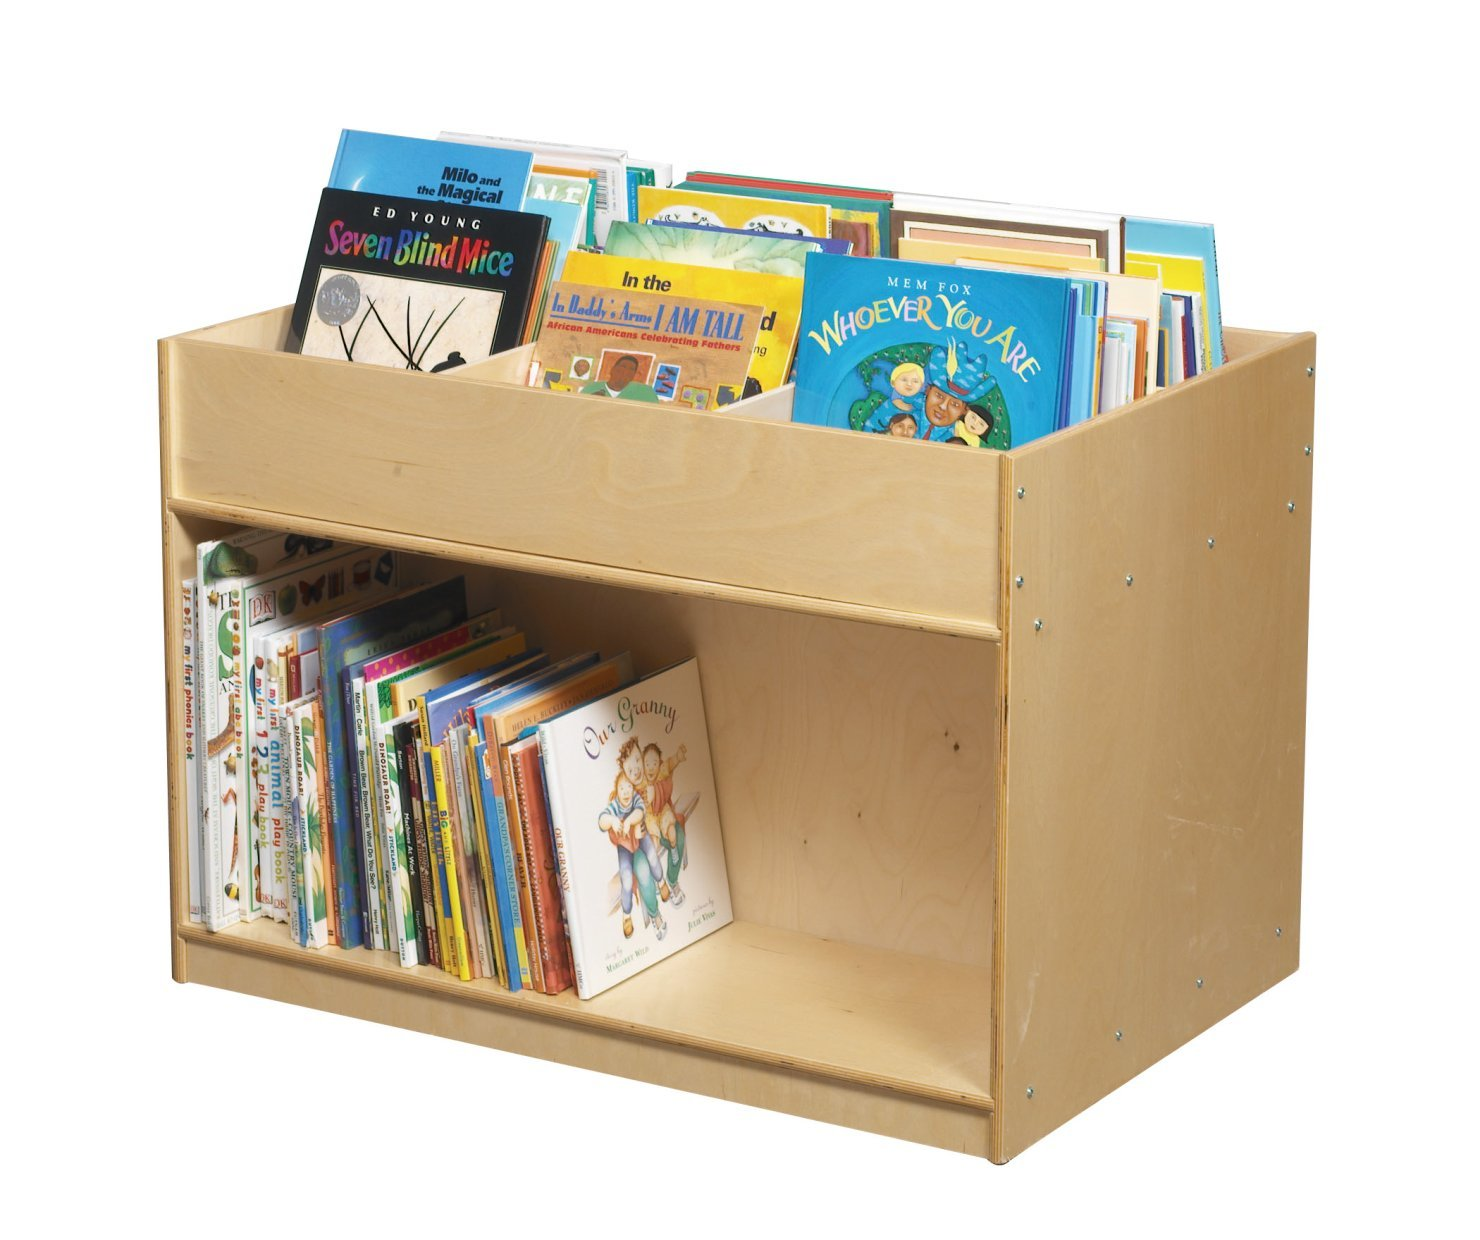 Childcraft 830018 Double-Sided Mobile Book Center, 36 x 24 x 25-7/8 Inches 25 88 Inches Height,24 Inches Width,36 Inches Length,Natural Wood